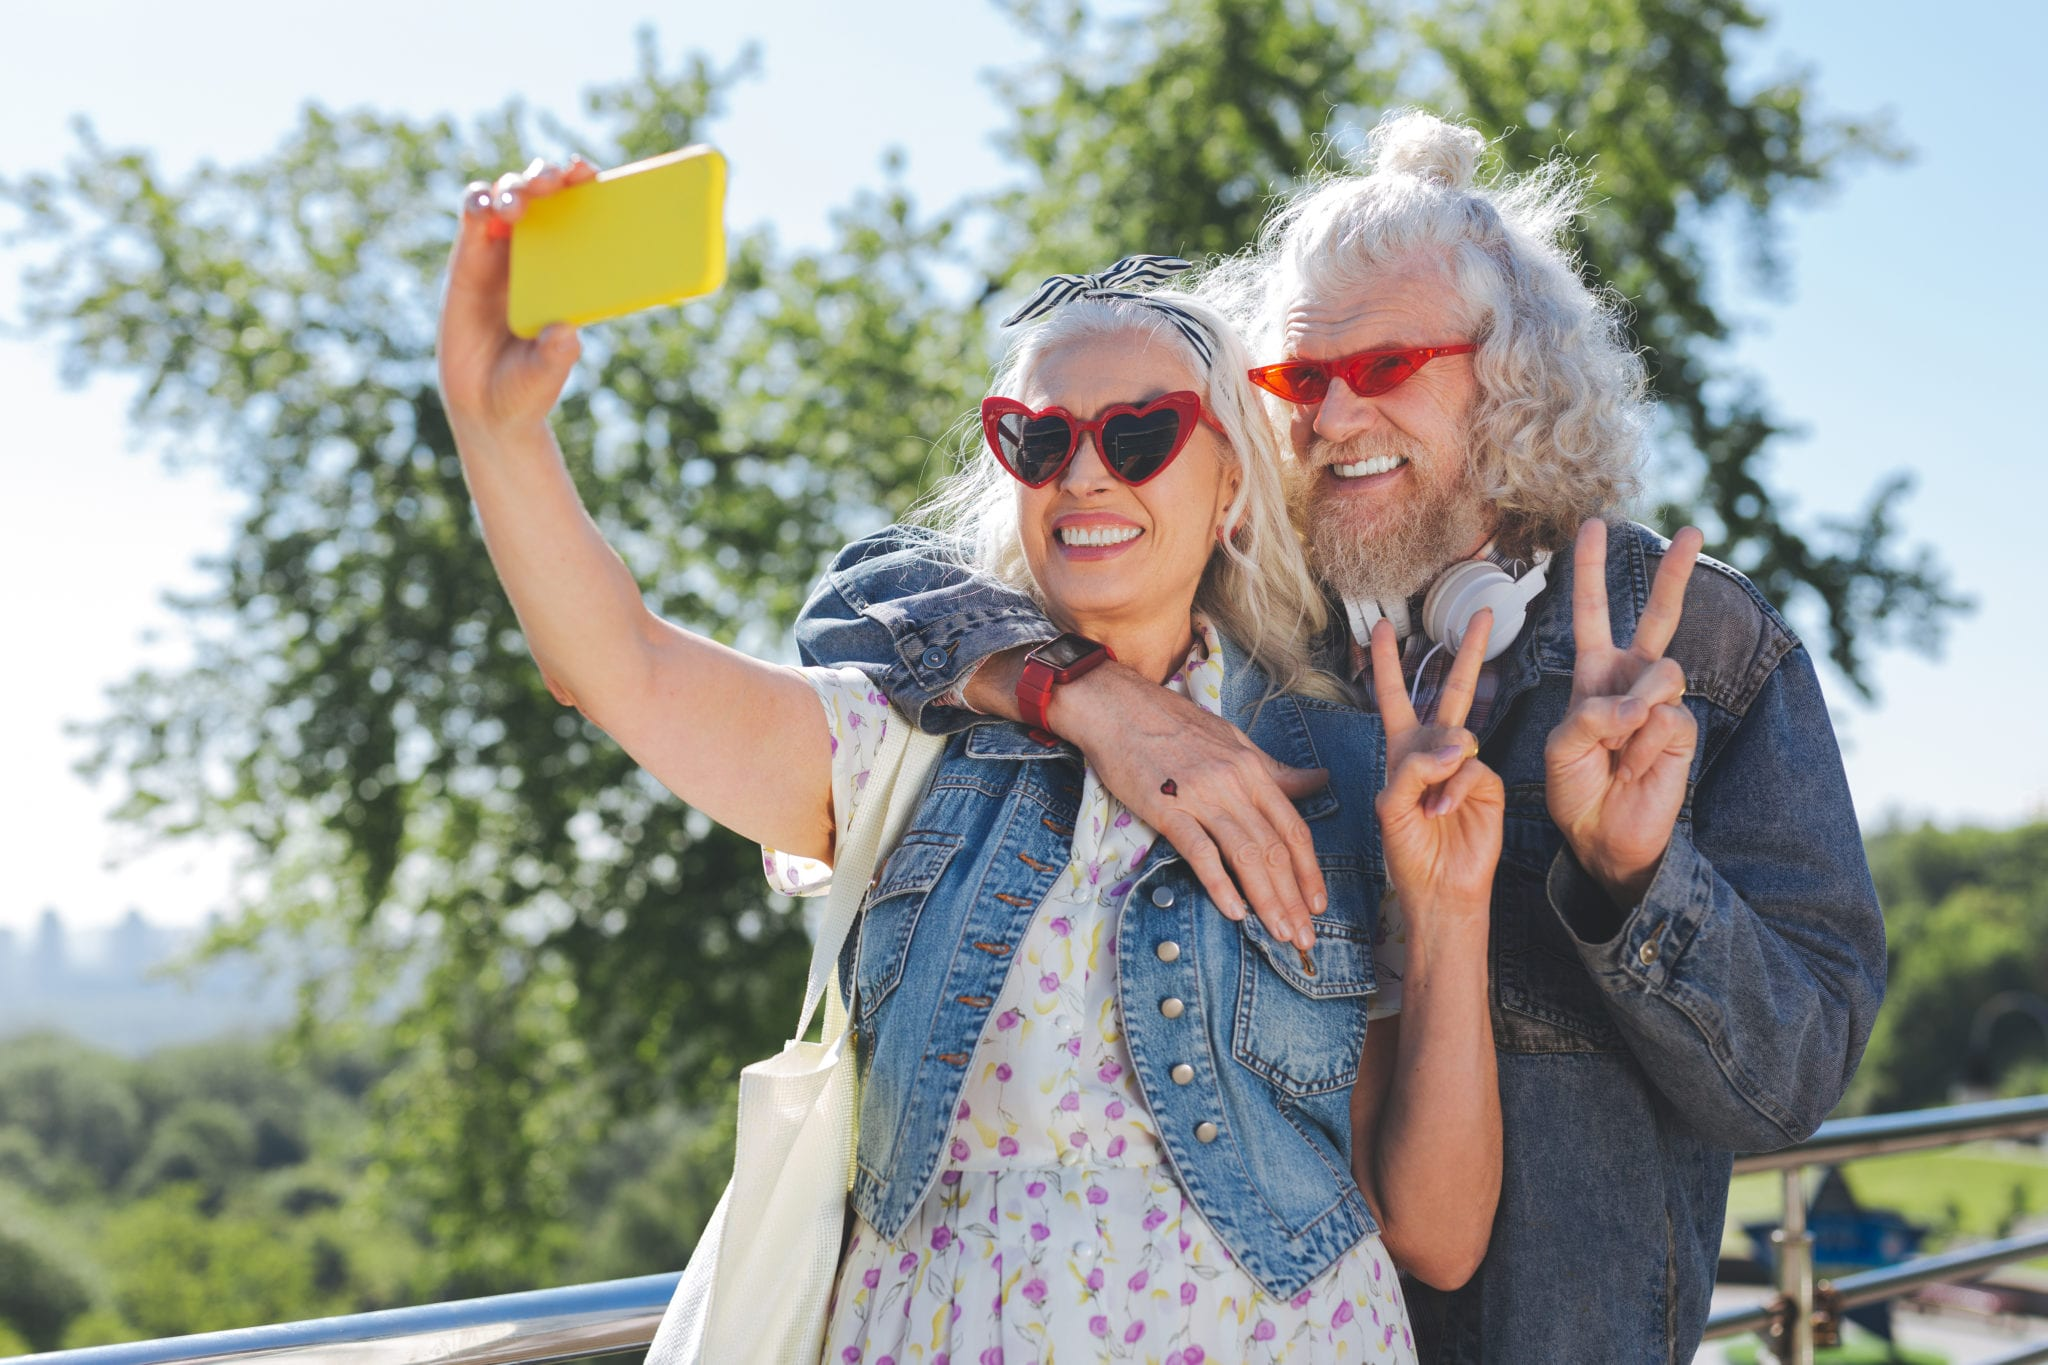 Boomers, millennials cite relaxation as top reason to use weed